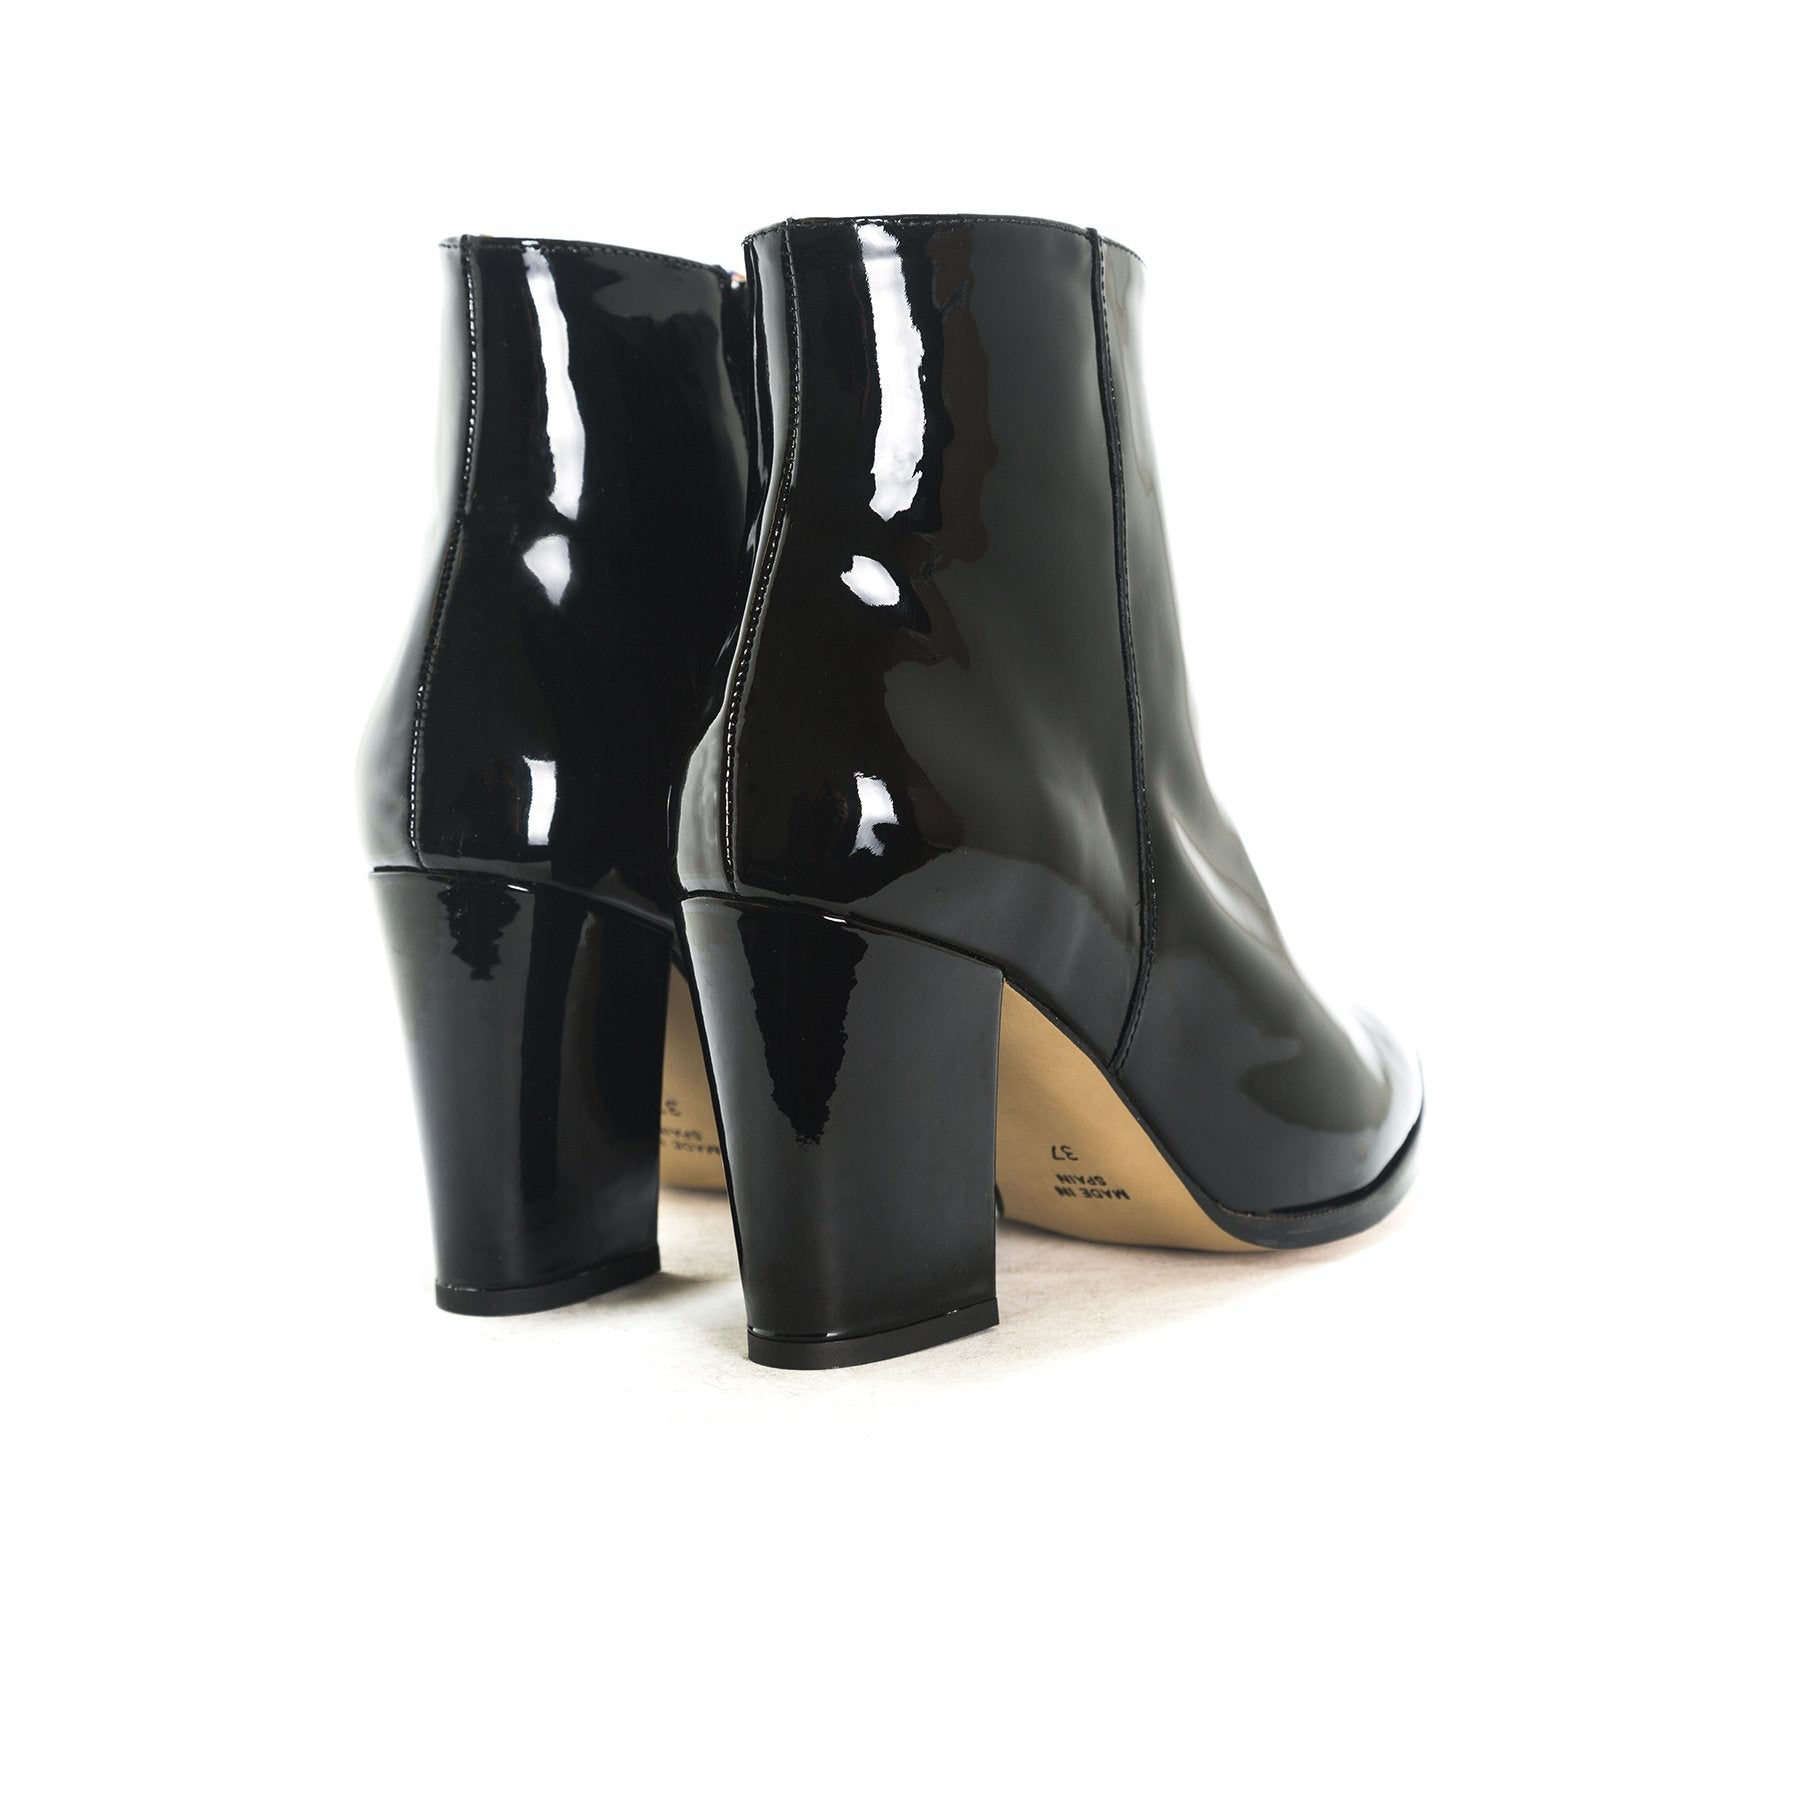 Merco Black Patent Boots